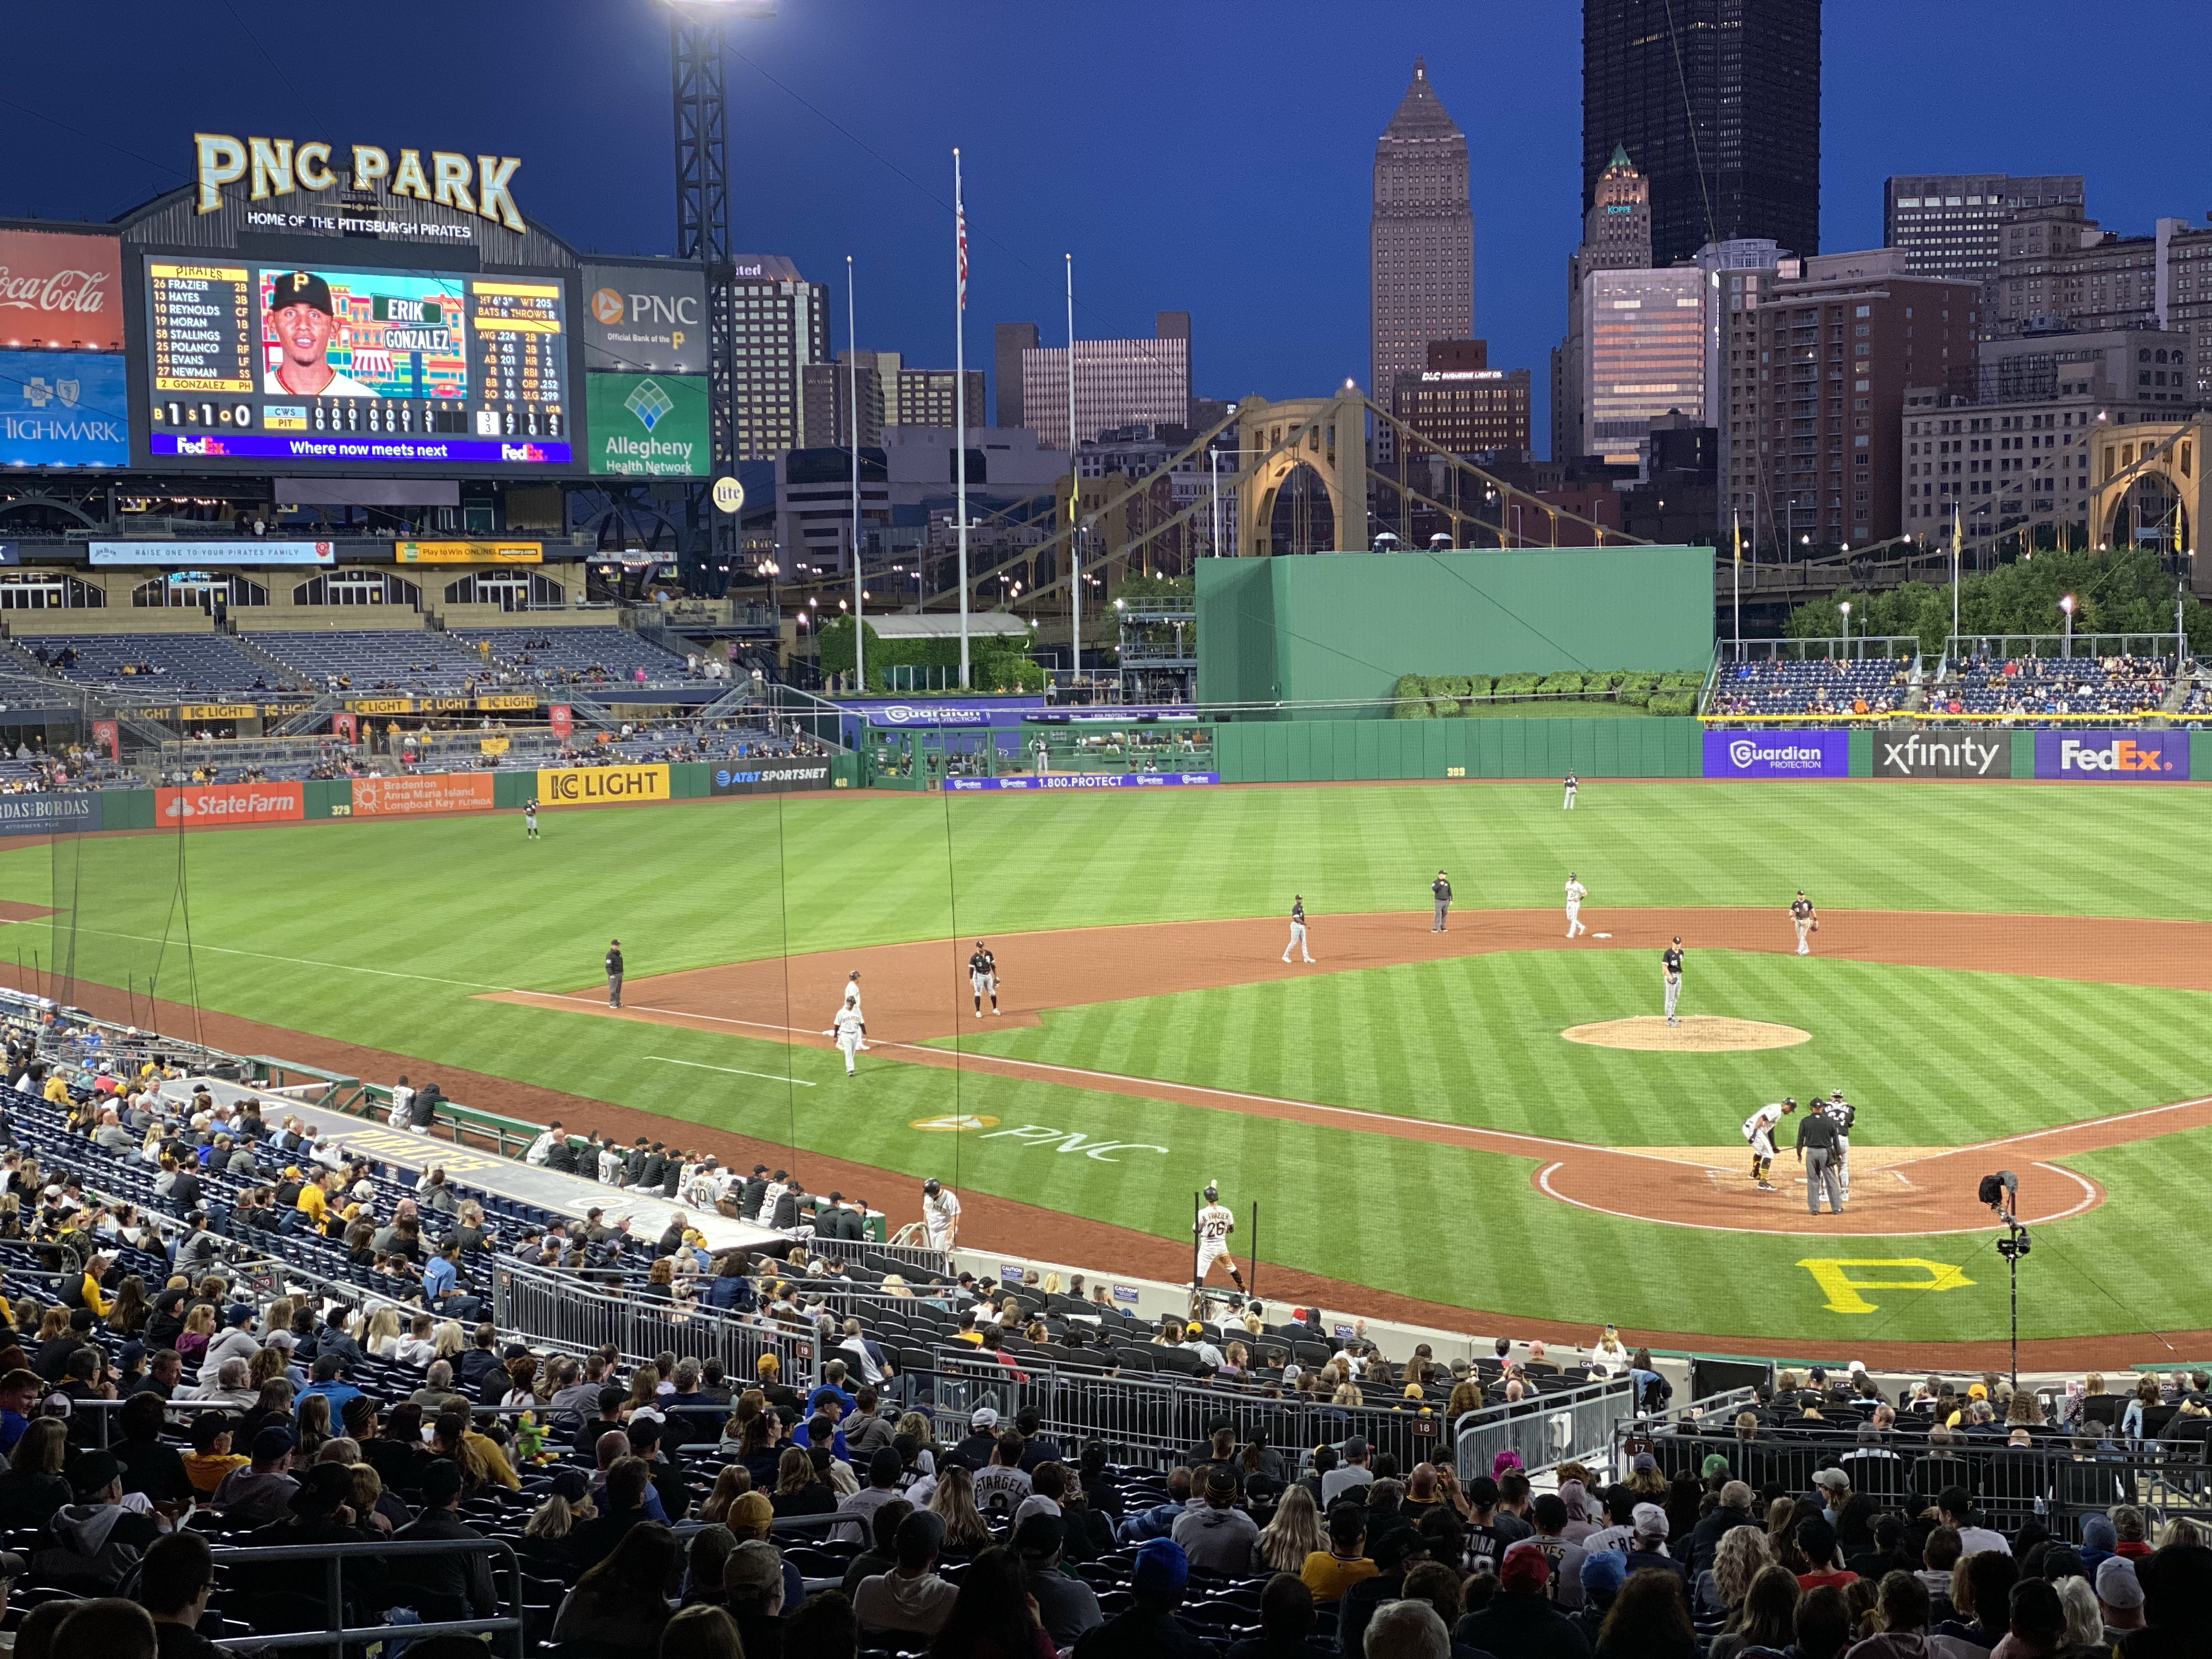 PNC Park from Section 117